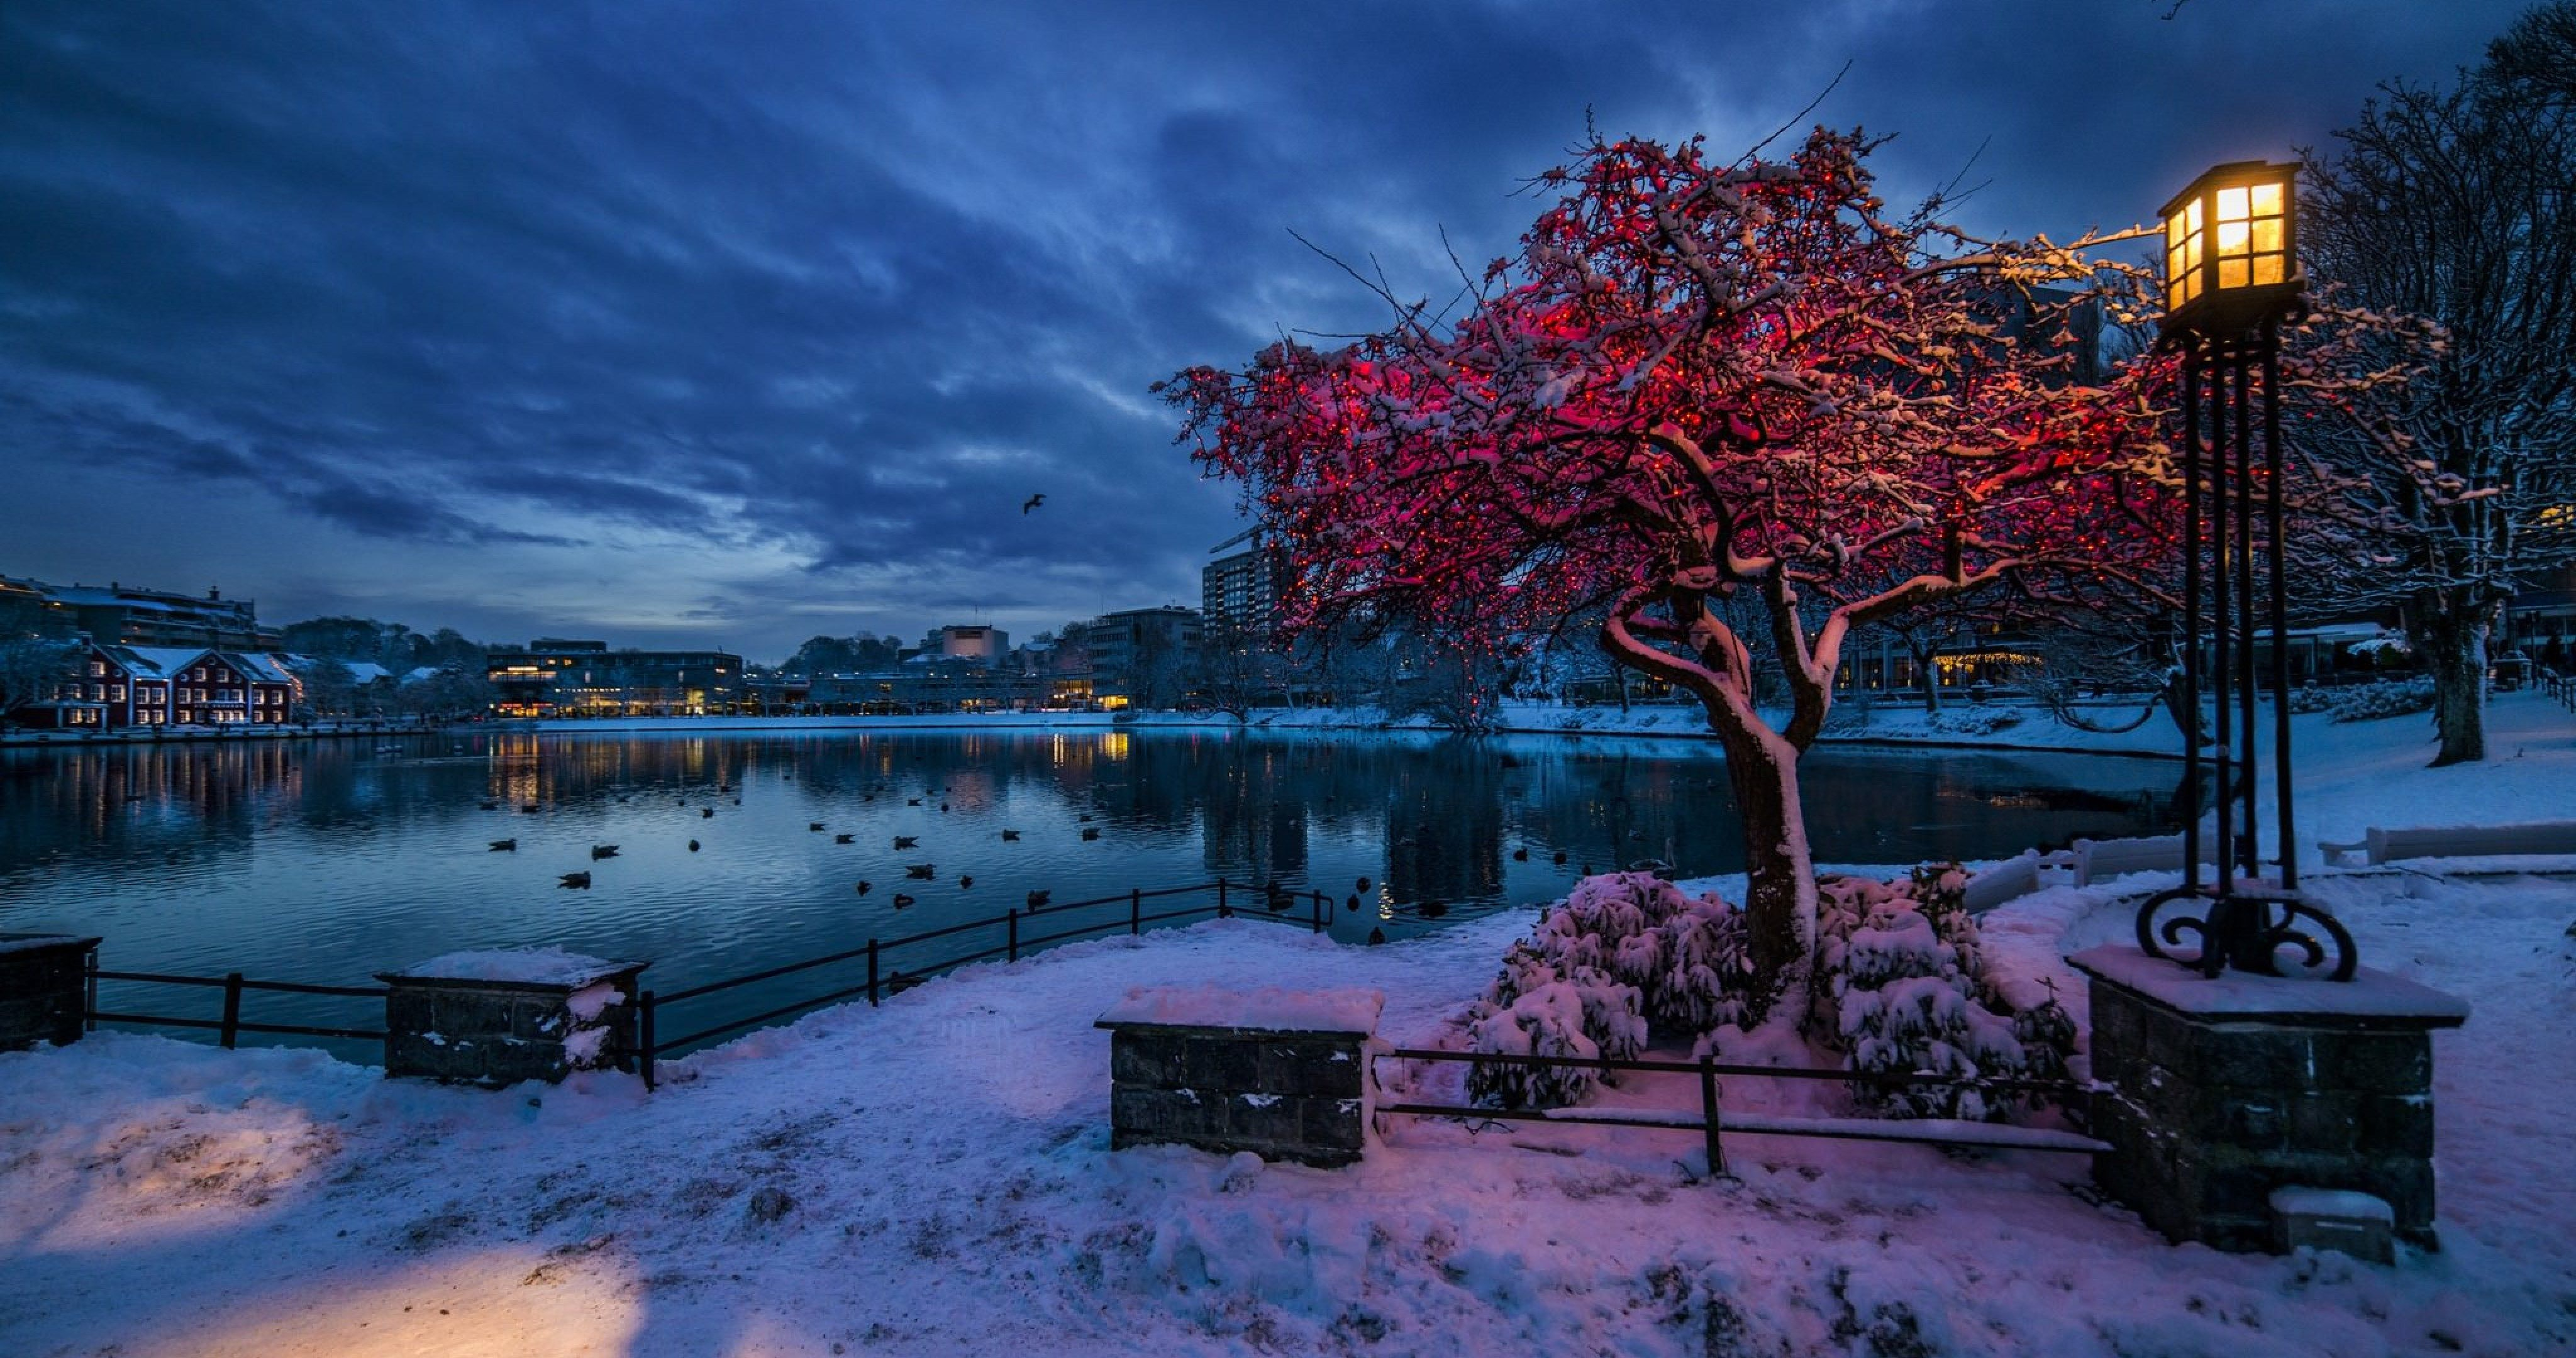 Norway Rogaland Stavanger 4k Ultra Hd Wallpaper Noruega